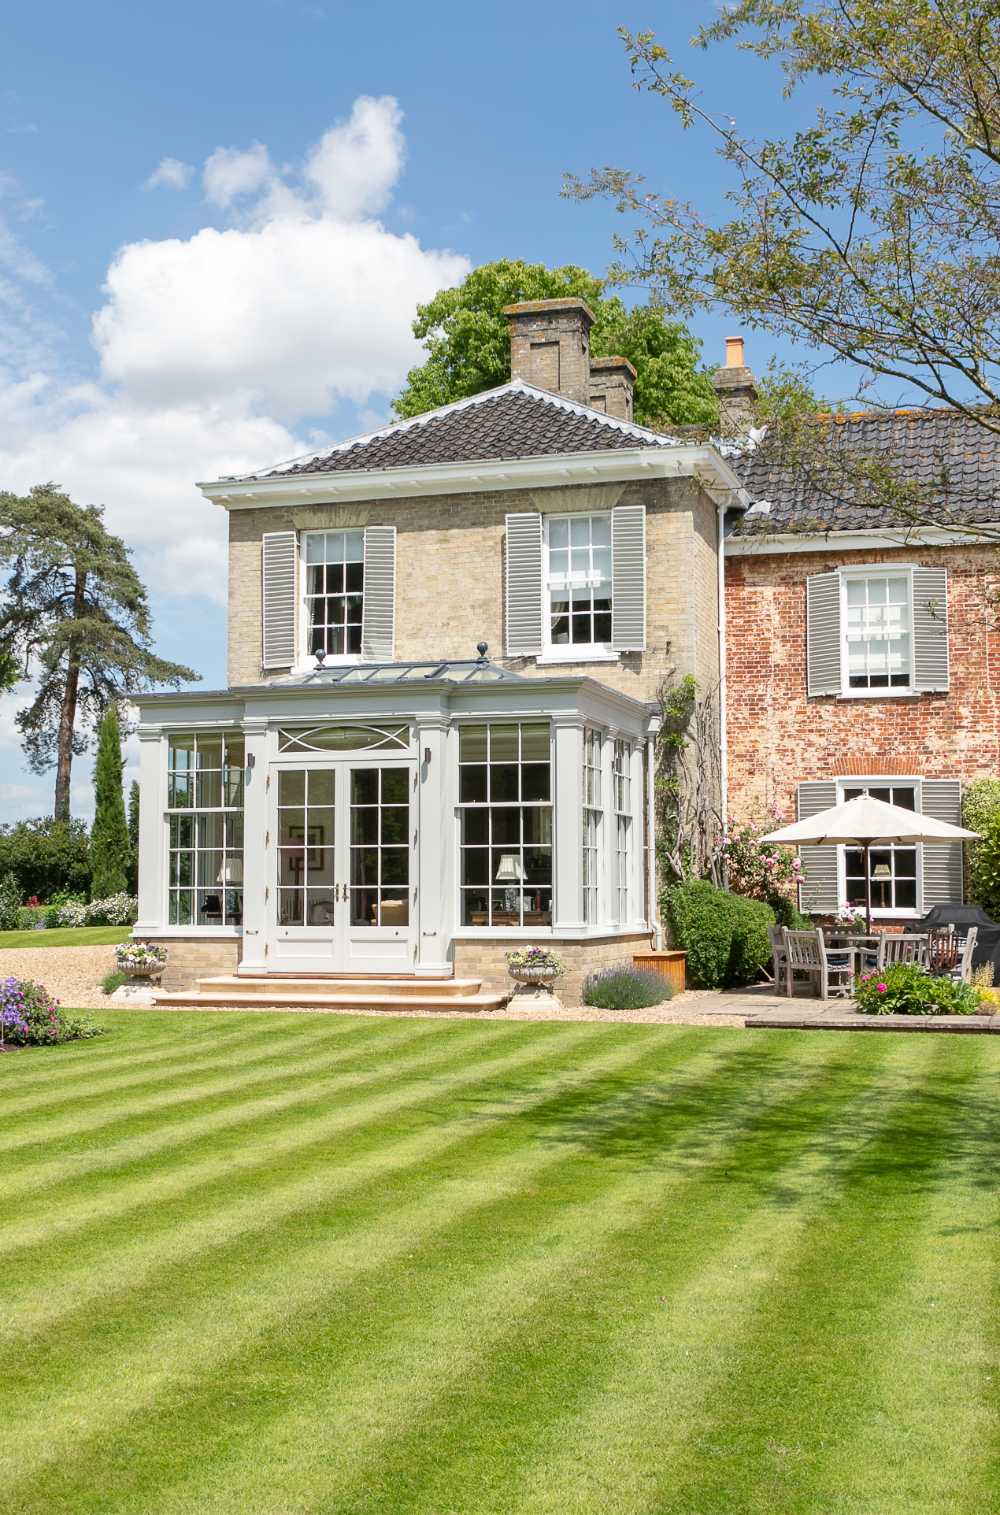 Georgian Country House with beautiful orangery extension